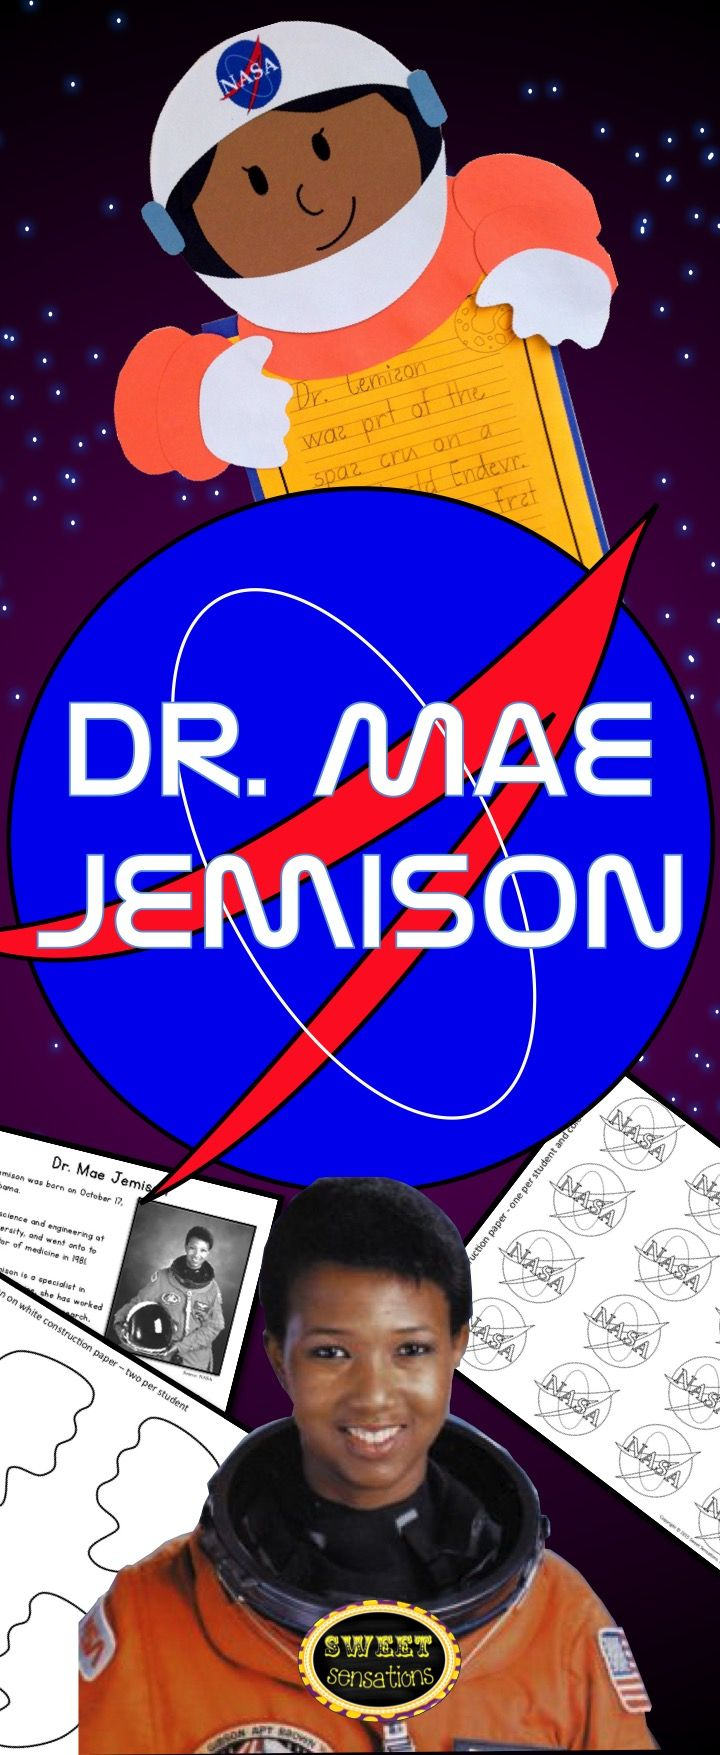 Great resource for black history, astronauts or space. In addition to being a brilliant scientist, engineer, computer software analyst and doctor, Mae Jemison was also the first African American female astronaut.